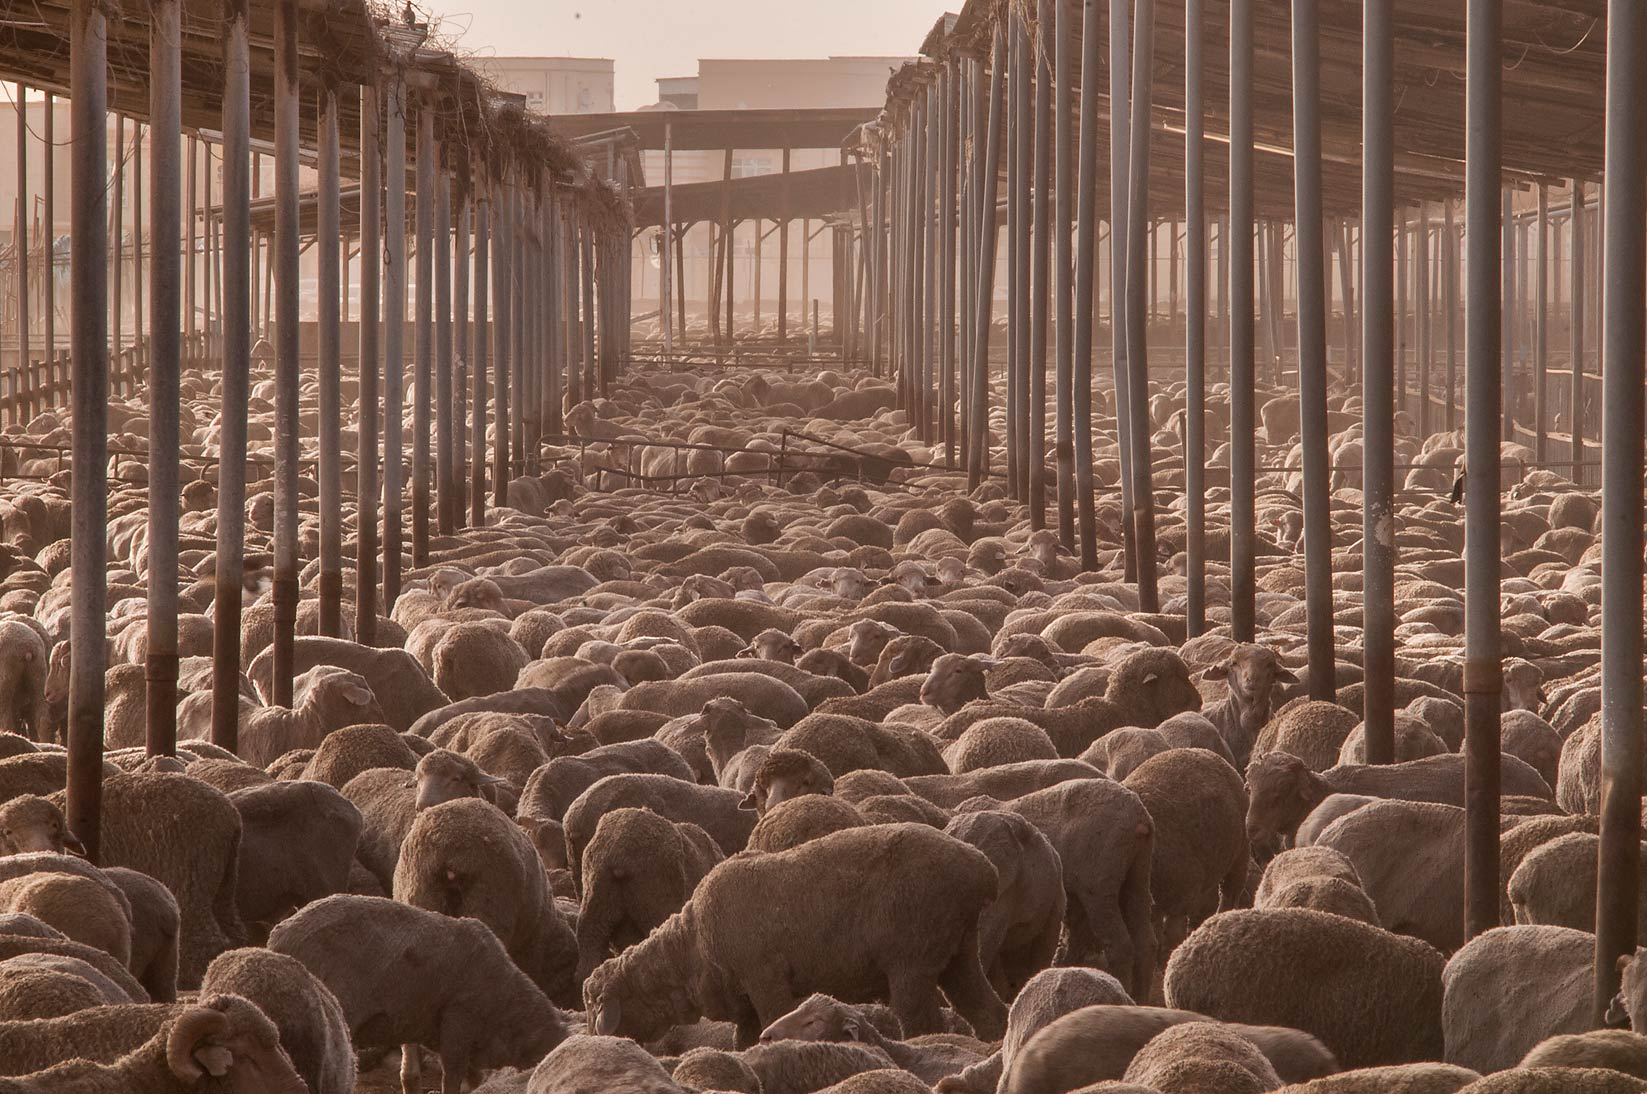 Australian sheep in a feedlot of Livestock Market...in Abu Hamour. Doha, Qatar